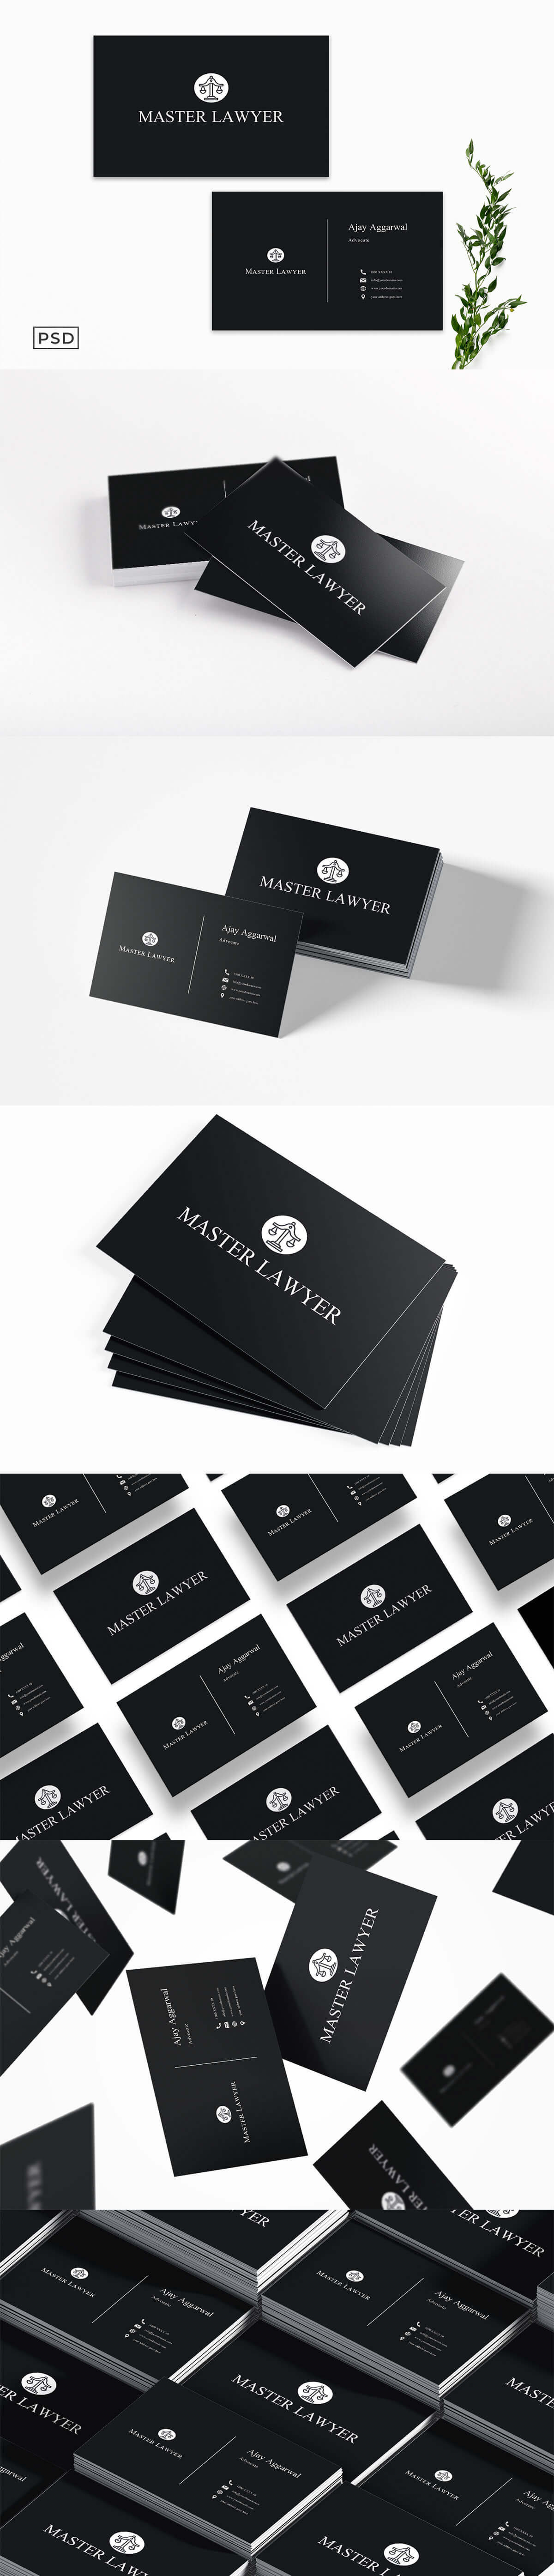 Free Lawyer Business Card Template